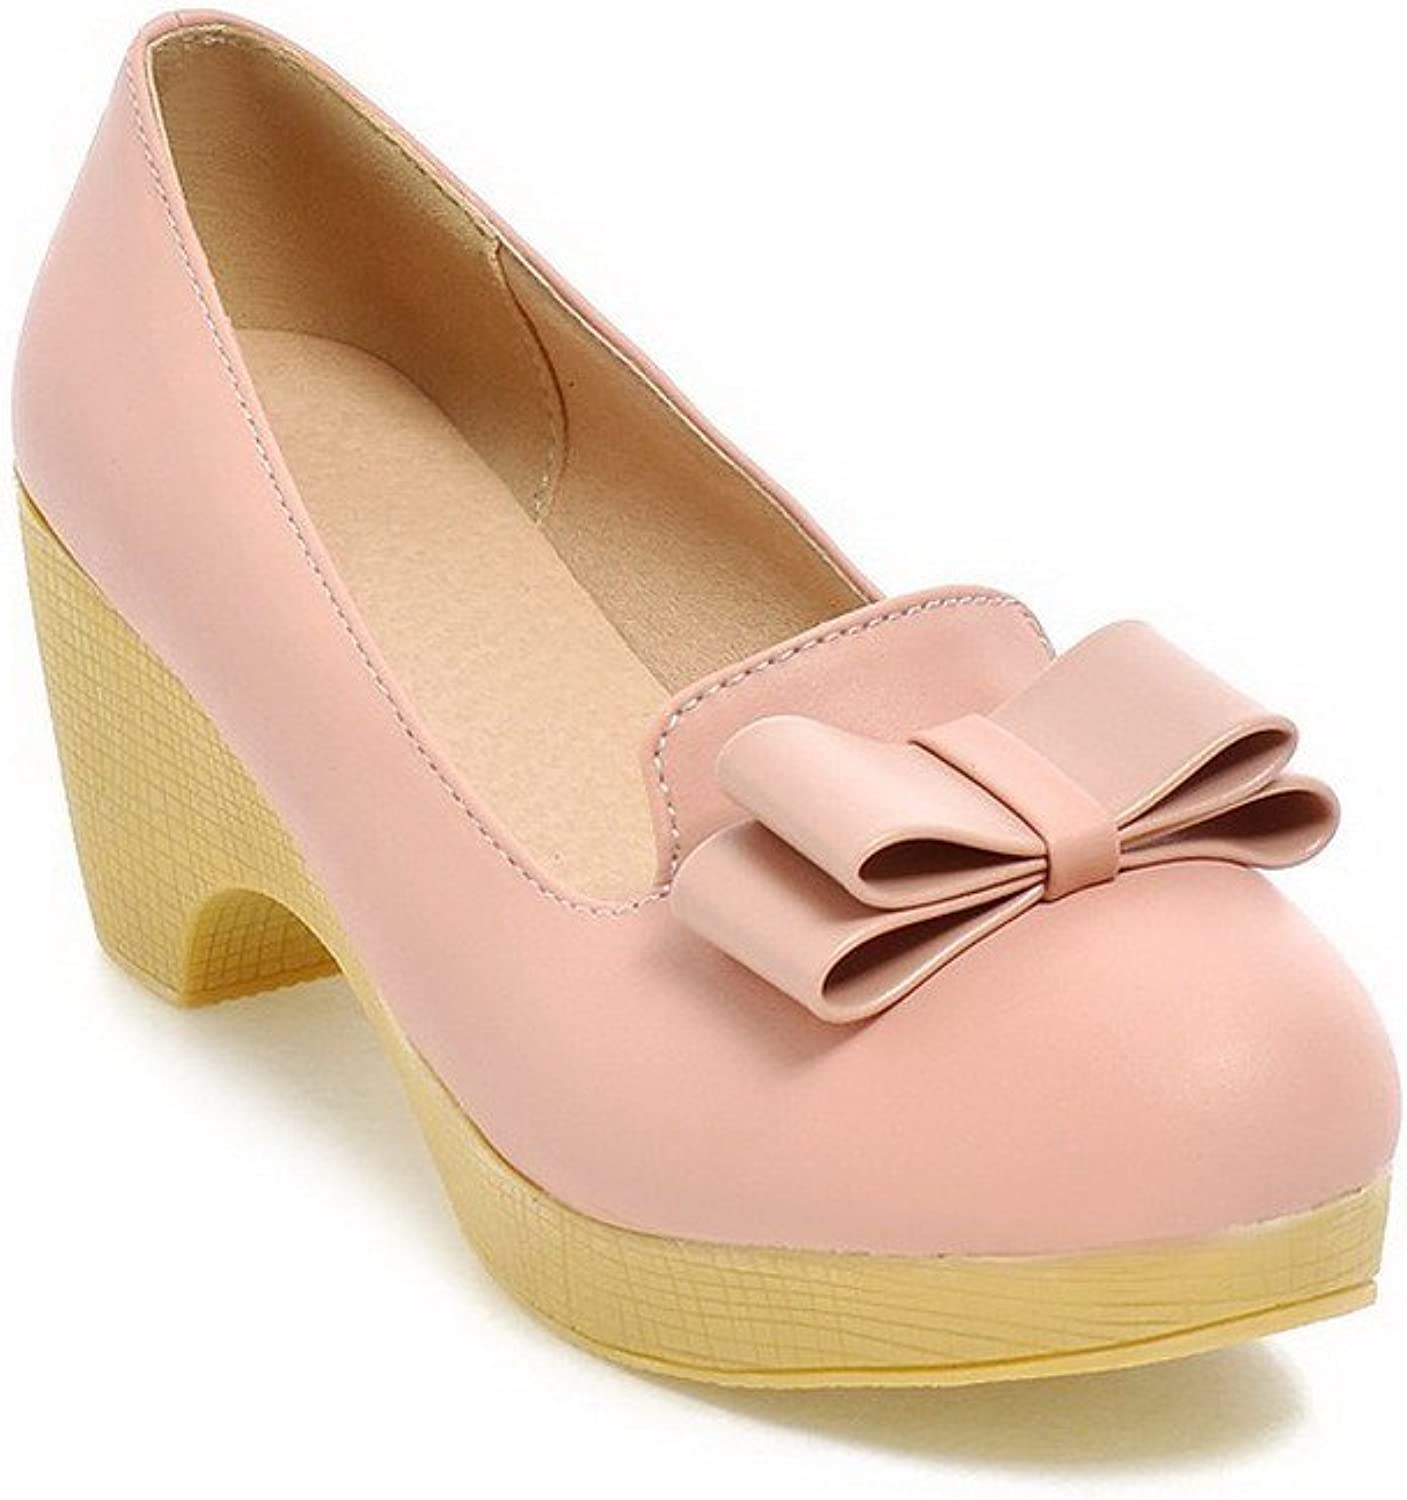 AmoonyFashion Women's Pull-on Round Closed Toe Kitten-Heels PU Solid Pumps-shoes